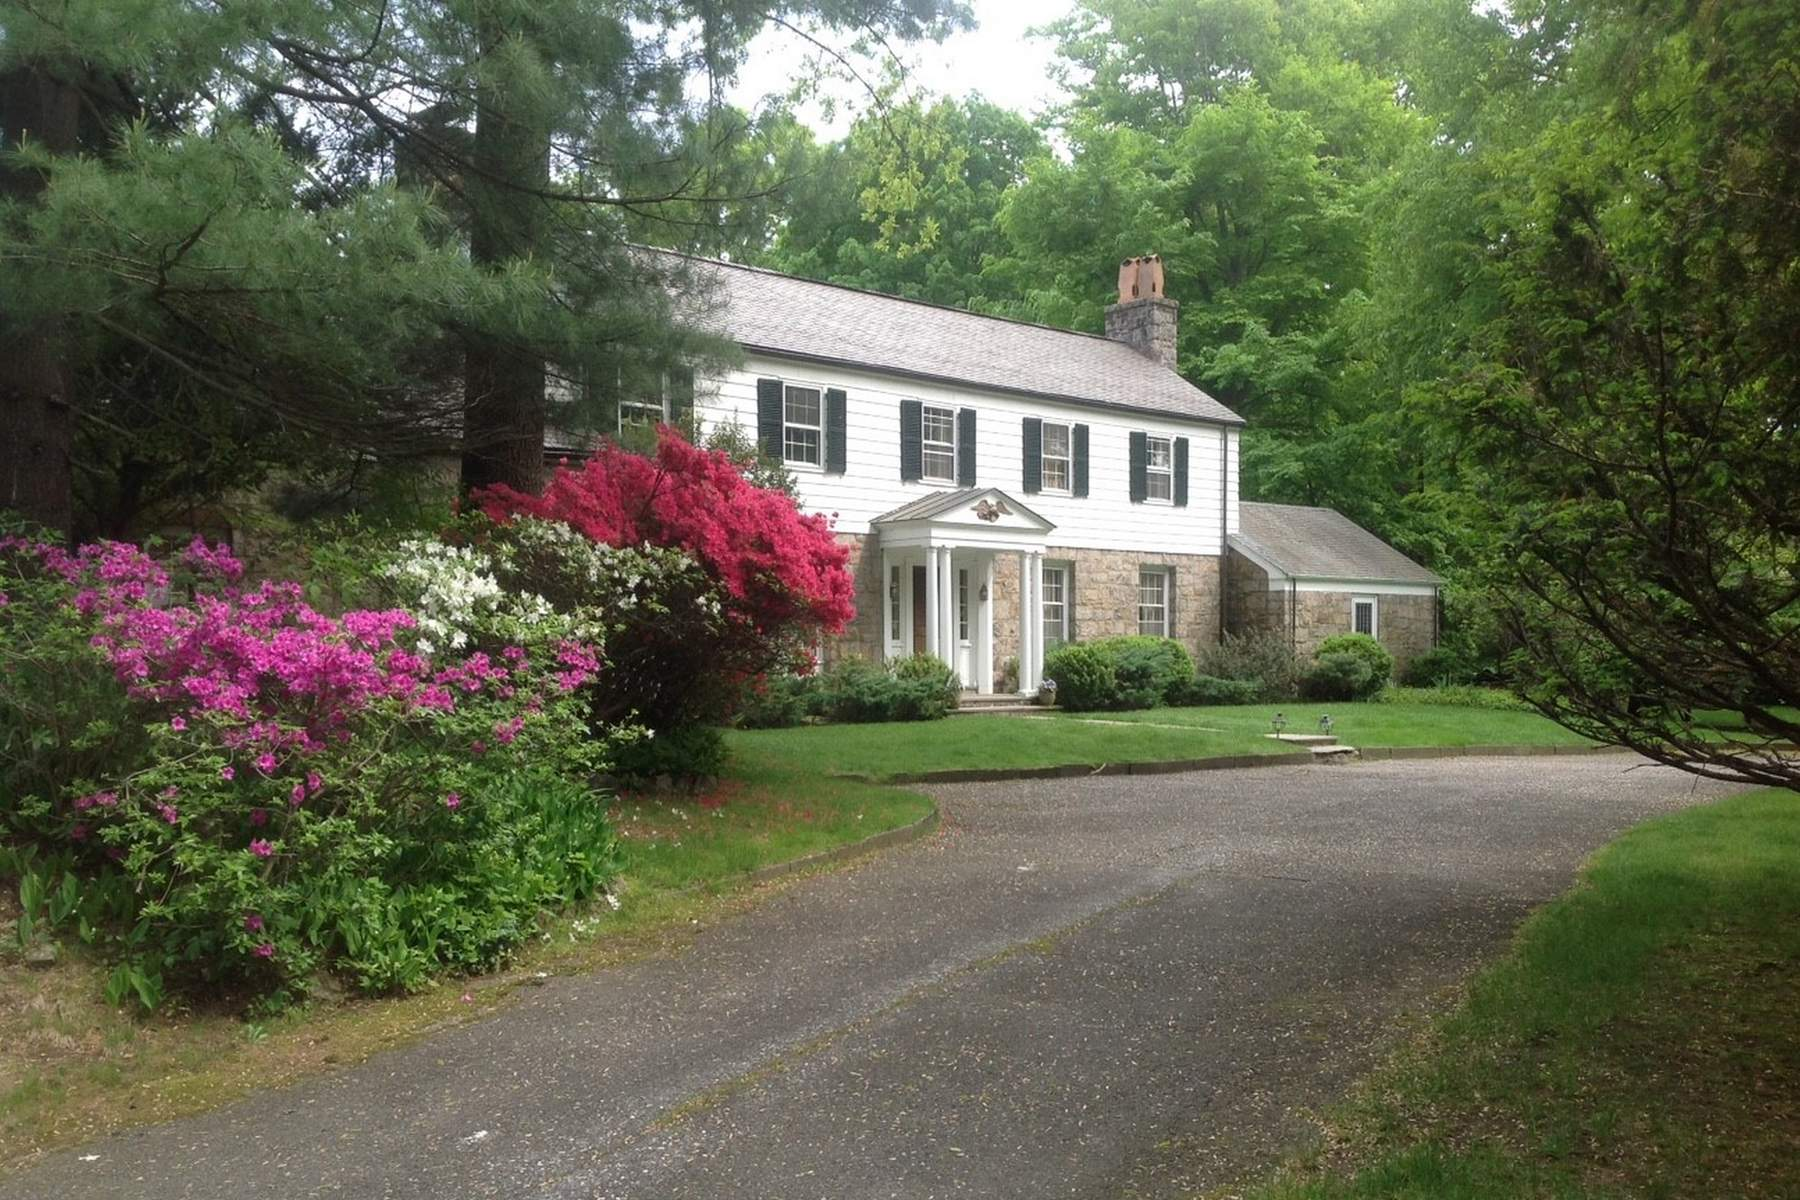 Single Family Home for Sale at Lake Avenue 591 Lake Avenue, Mid-Country, Greenwich, Connecticut, 06830 United States